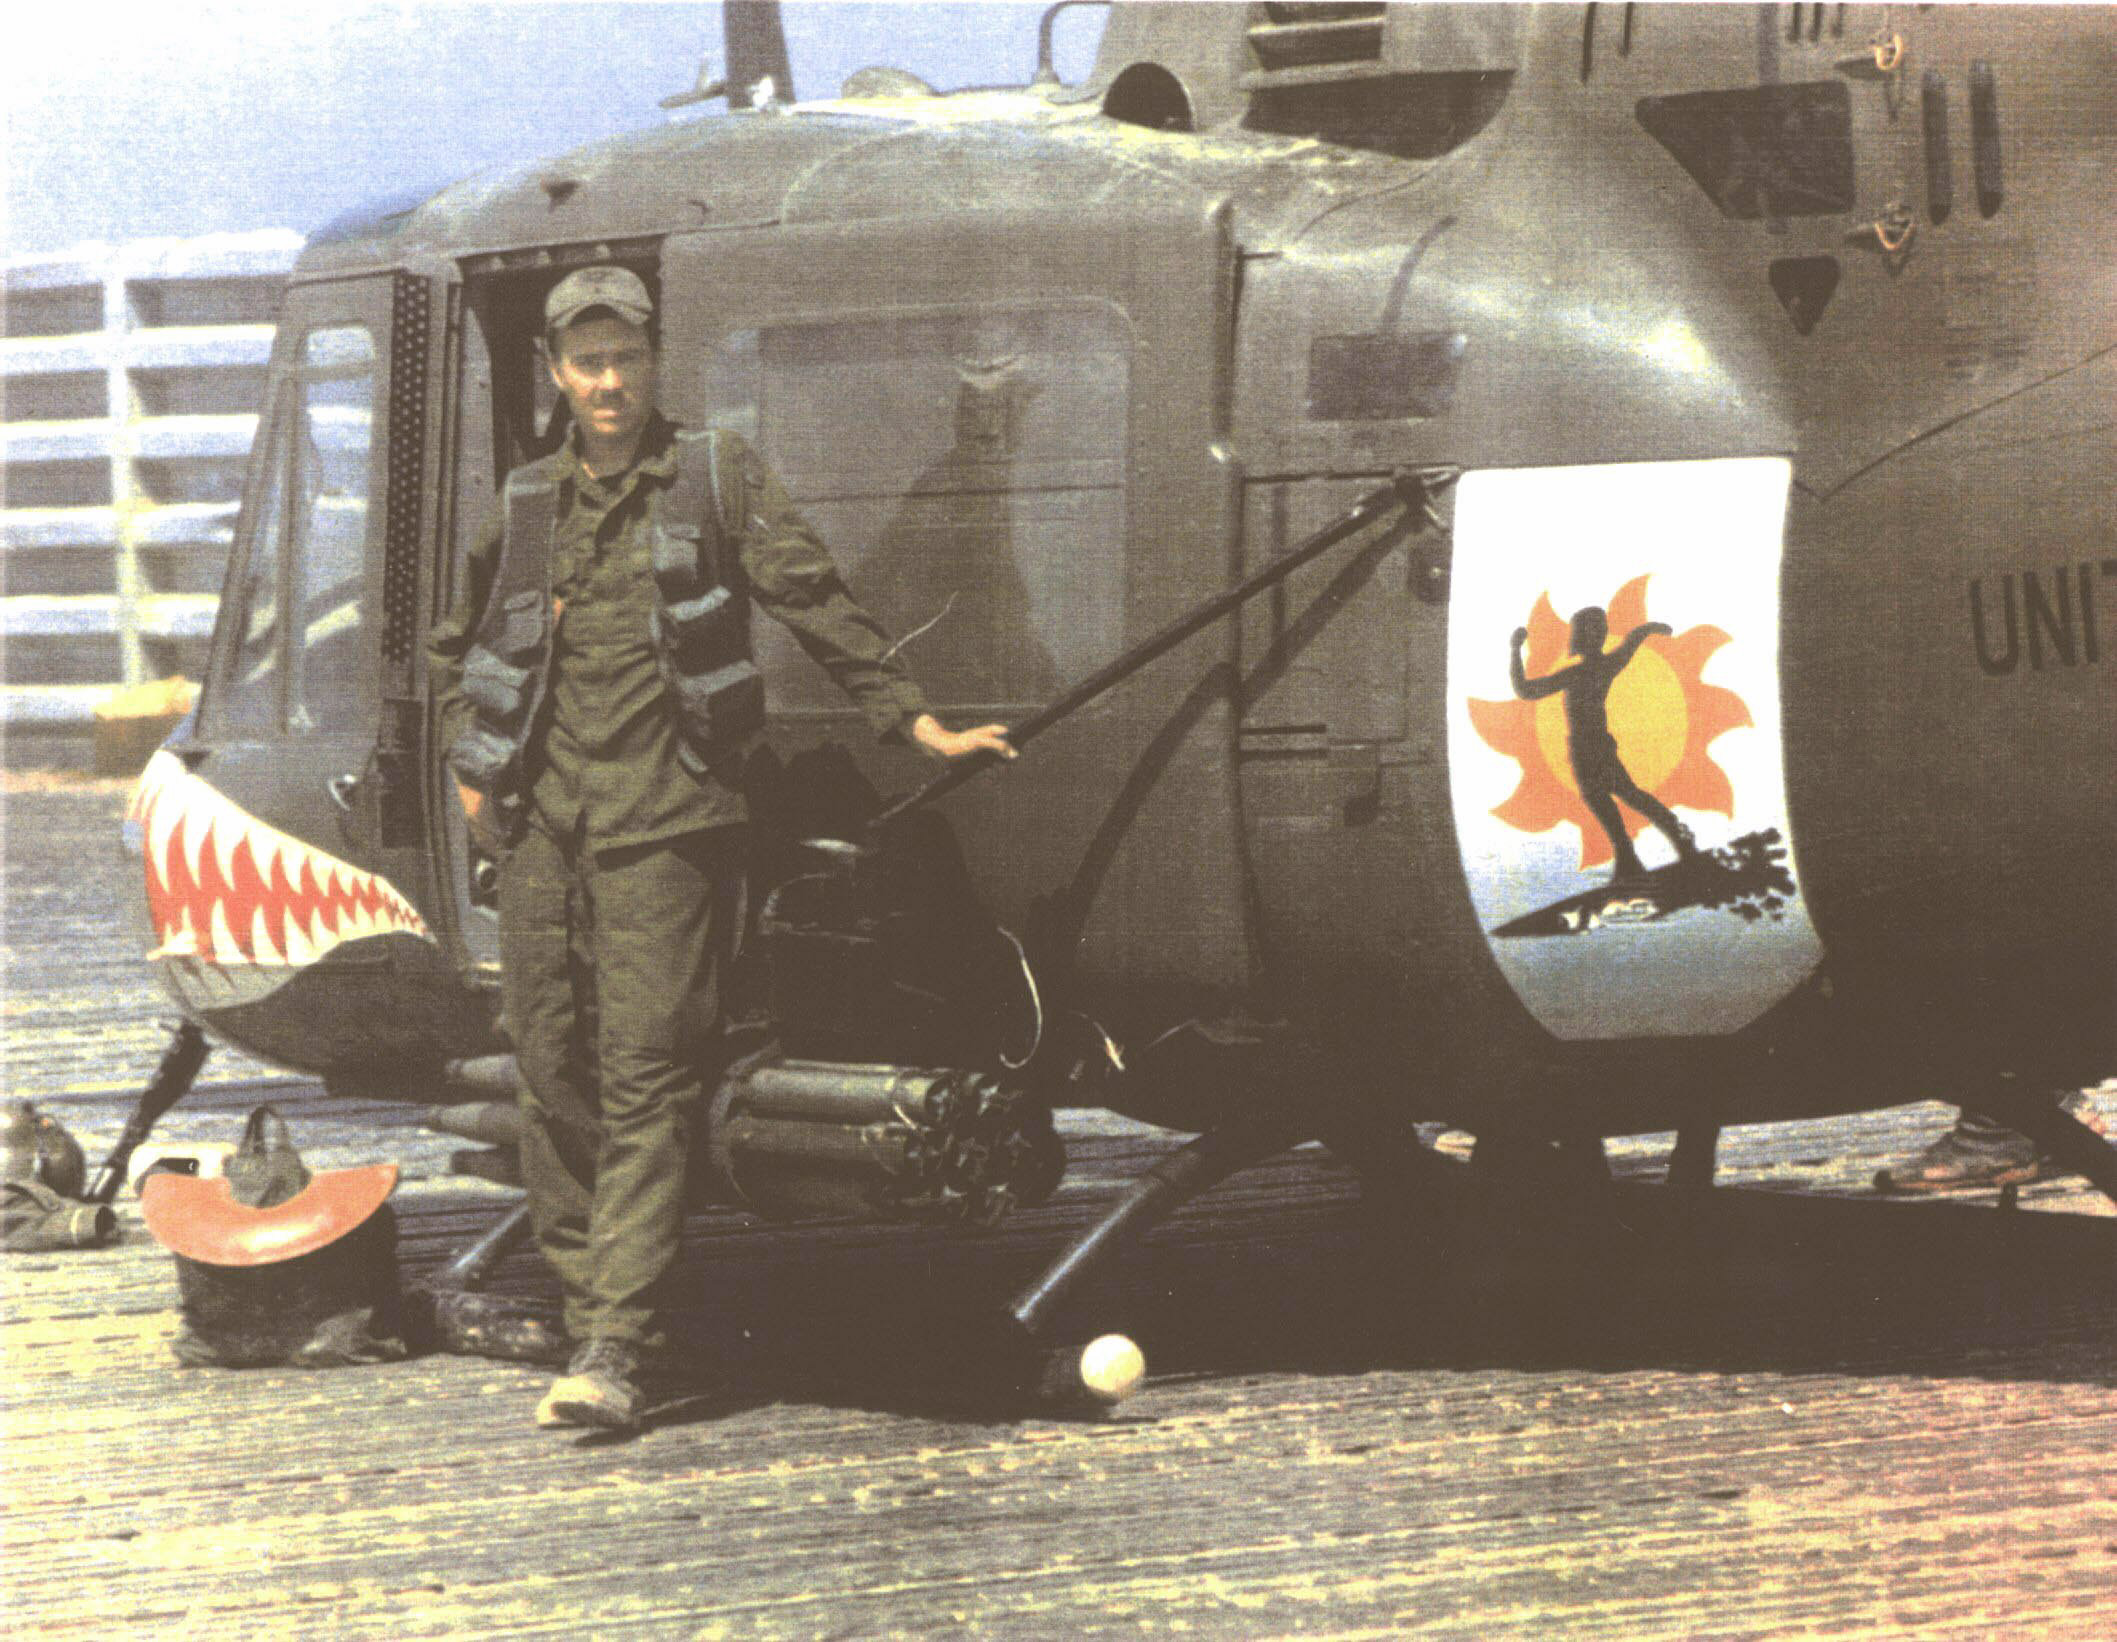 174th ahc vietnam - A Young W01 Fred Thompson With Shark 161 Surfer A Few Days Before The Shoot Down In Laos Note The Personalized Artwork A Surfer Riding The Back Of A